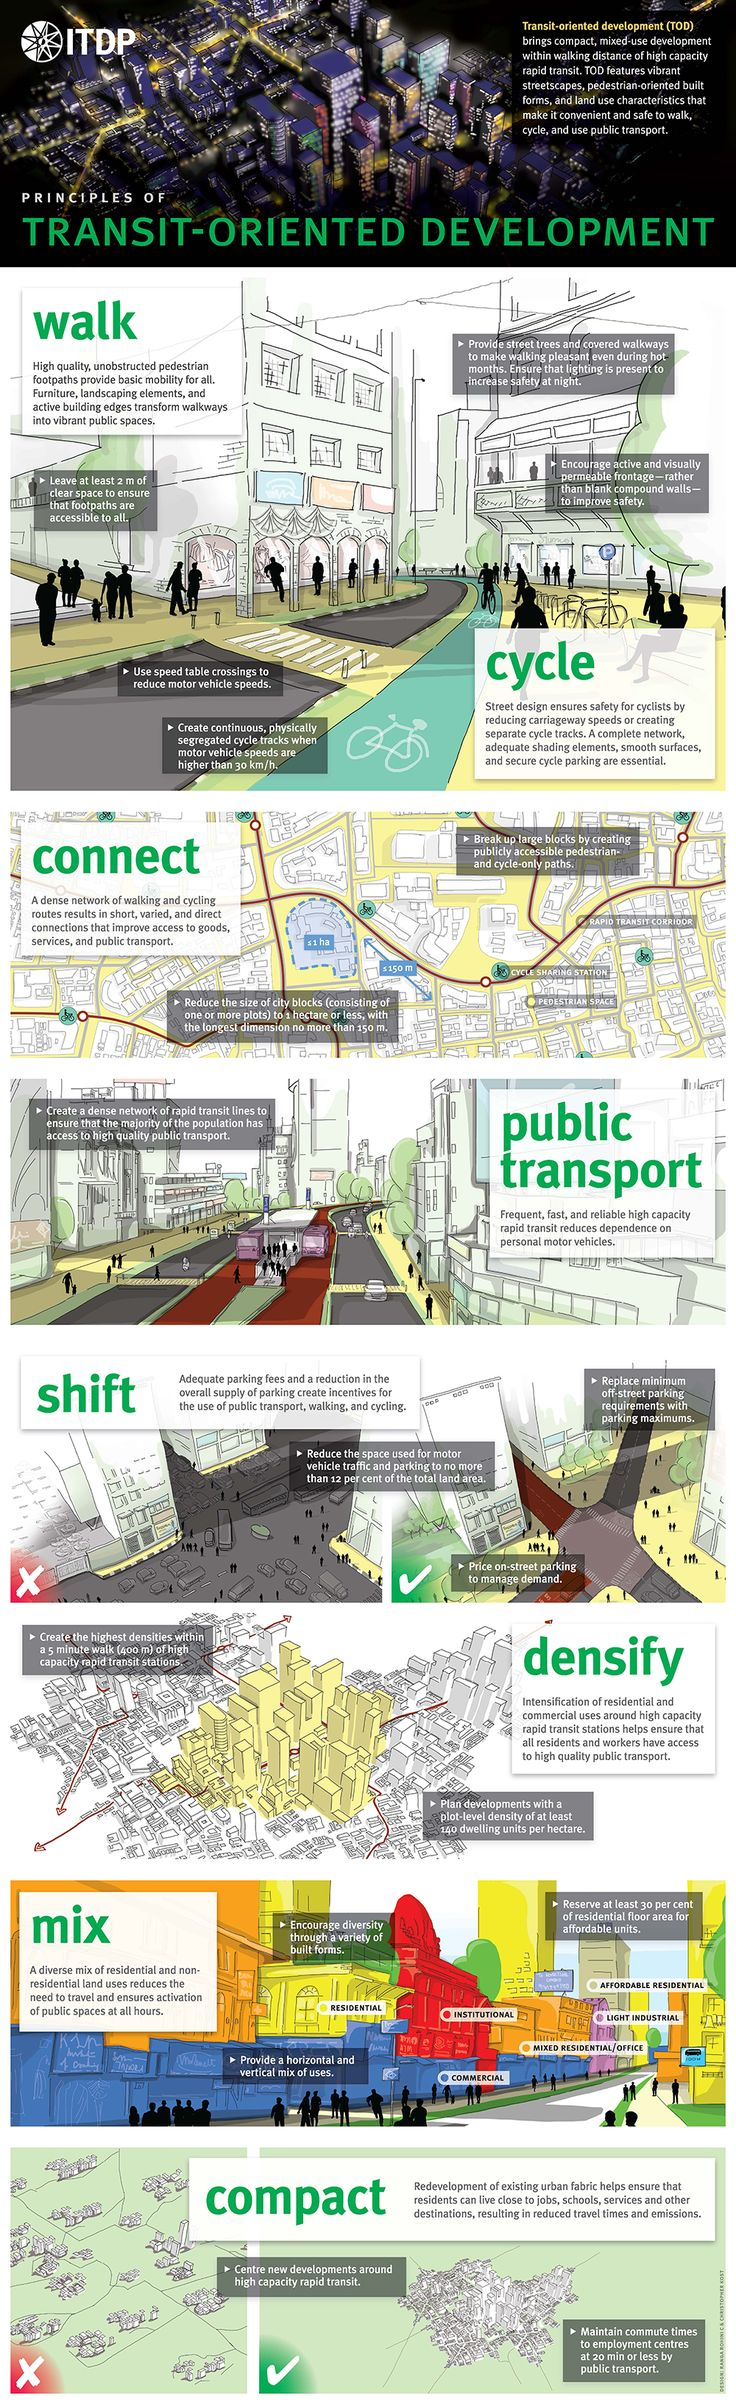 Transit-oriented development (TOD) brings compact, mixed-use development within walking distance of high capacity rapid transit. TOD features vibrant streetscapes, pedestrian-oriented built forms, and land use characteristics that make it convenient and safe to walk, cycle, and use public transport. A poster demonstrating the principles of Transport Oriented Development: English Russian